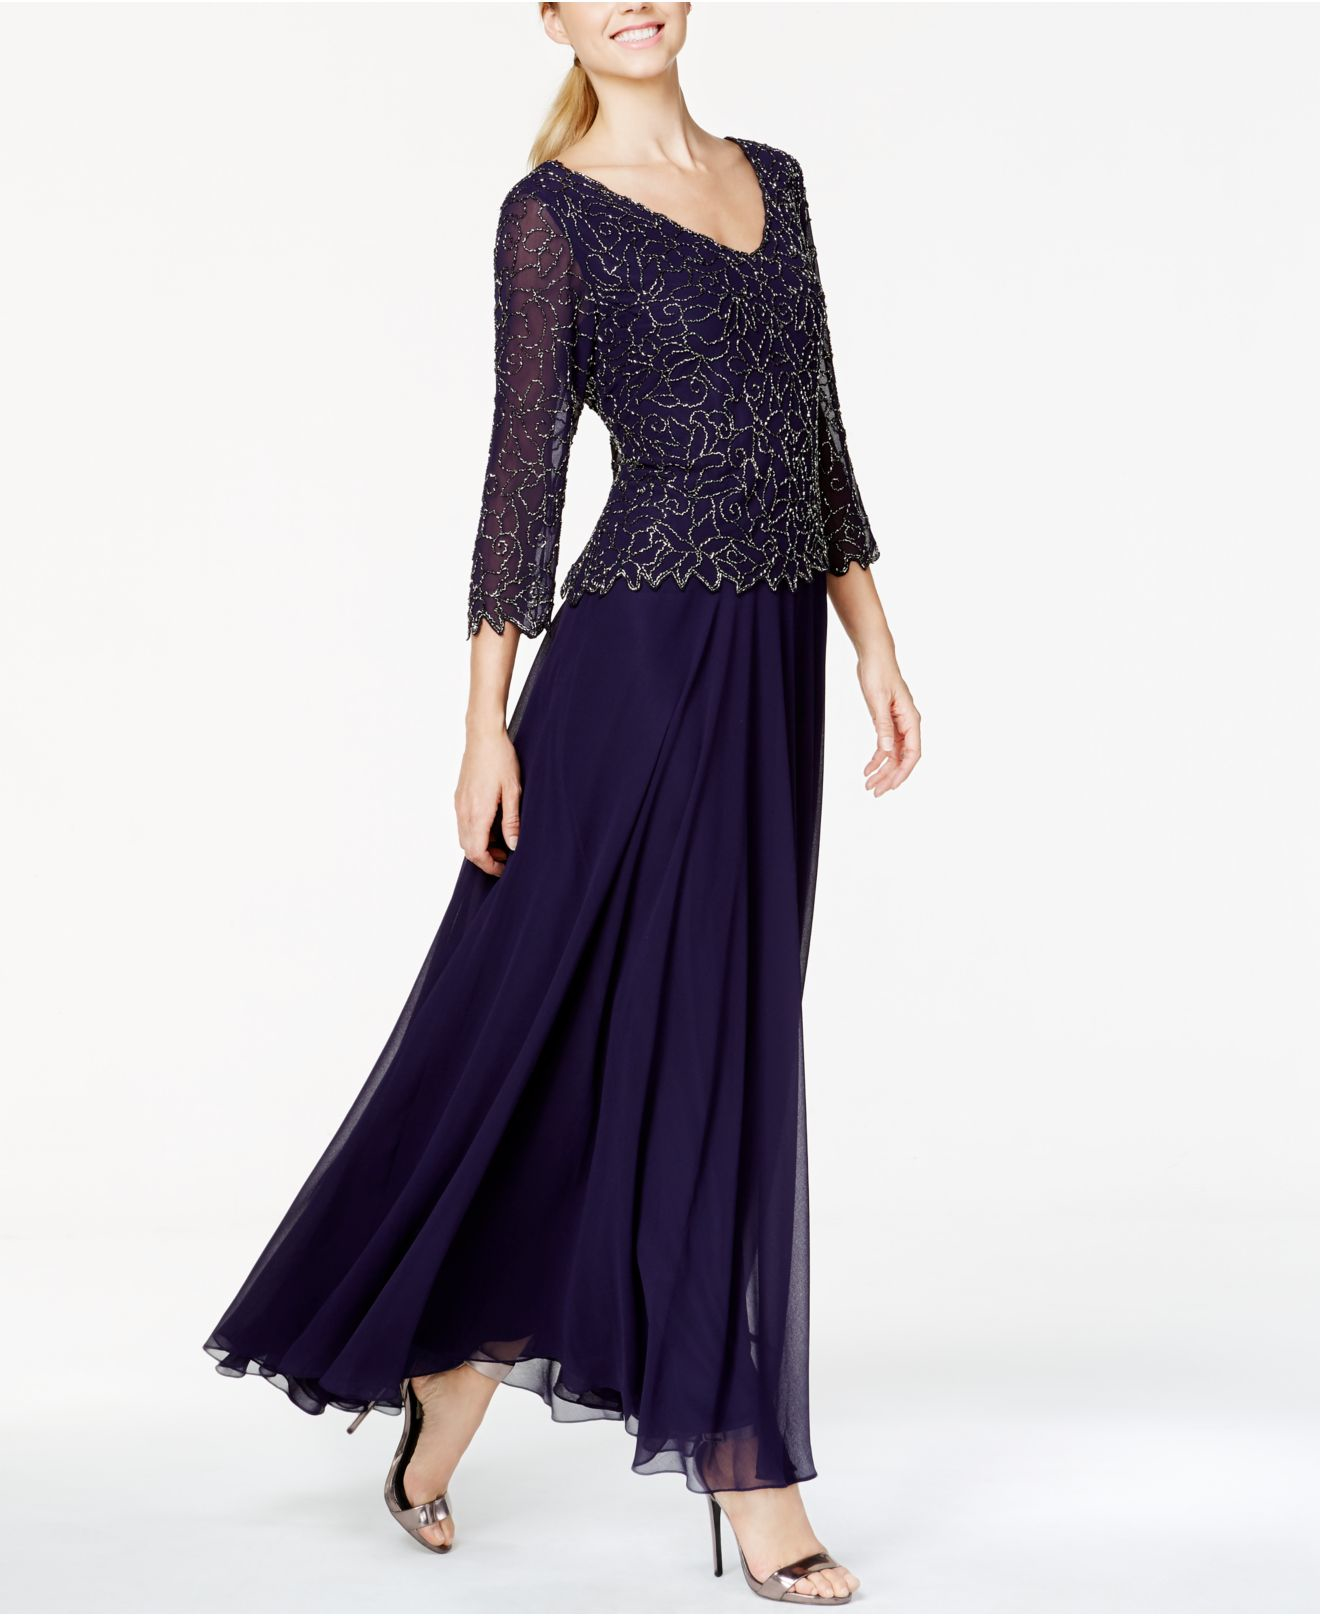 Lyst - J Kara Beaded Popover Gown in Purple